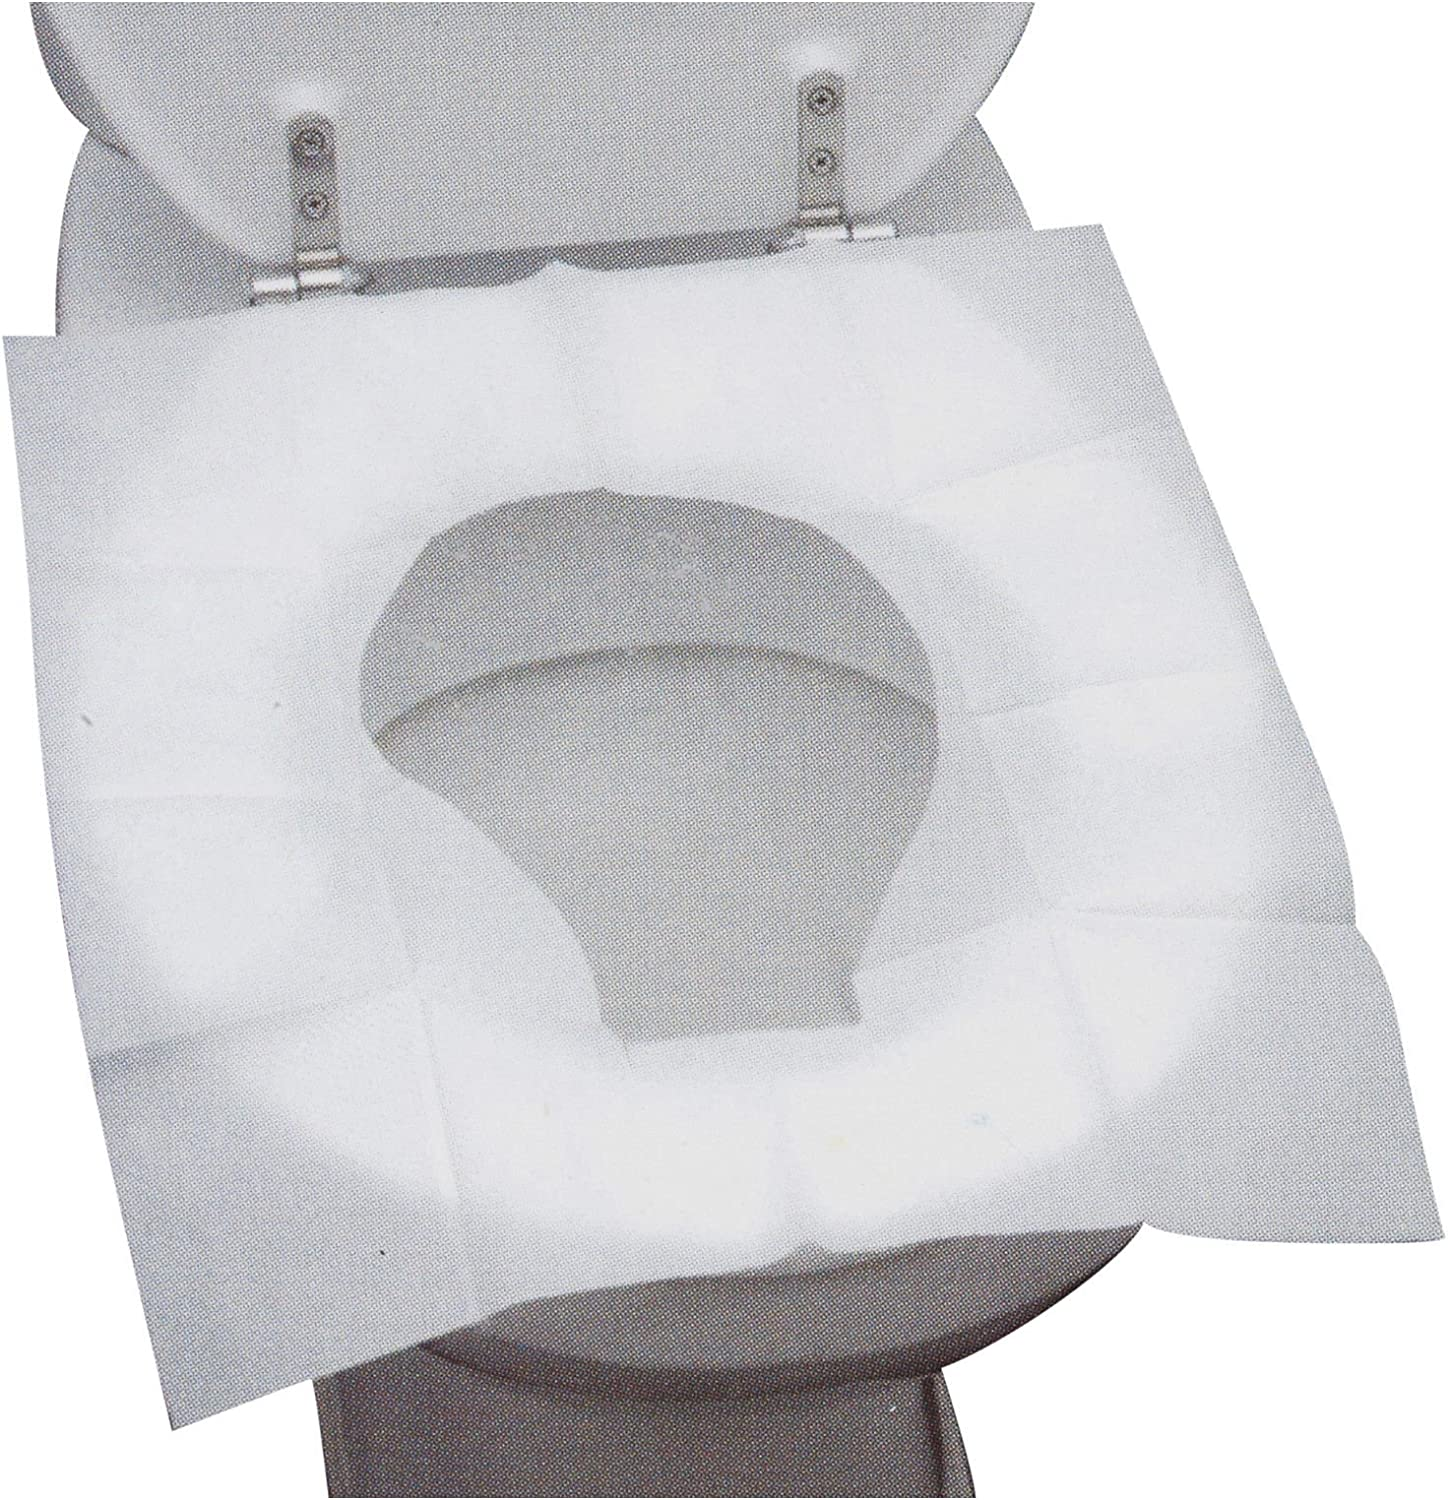 50 x Disposable Toilet Seat Covers Hygienic Flushable Travel Camping Pocket Size